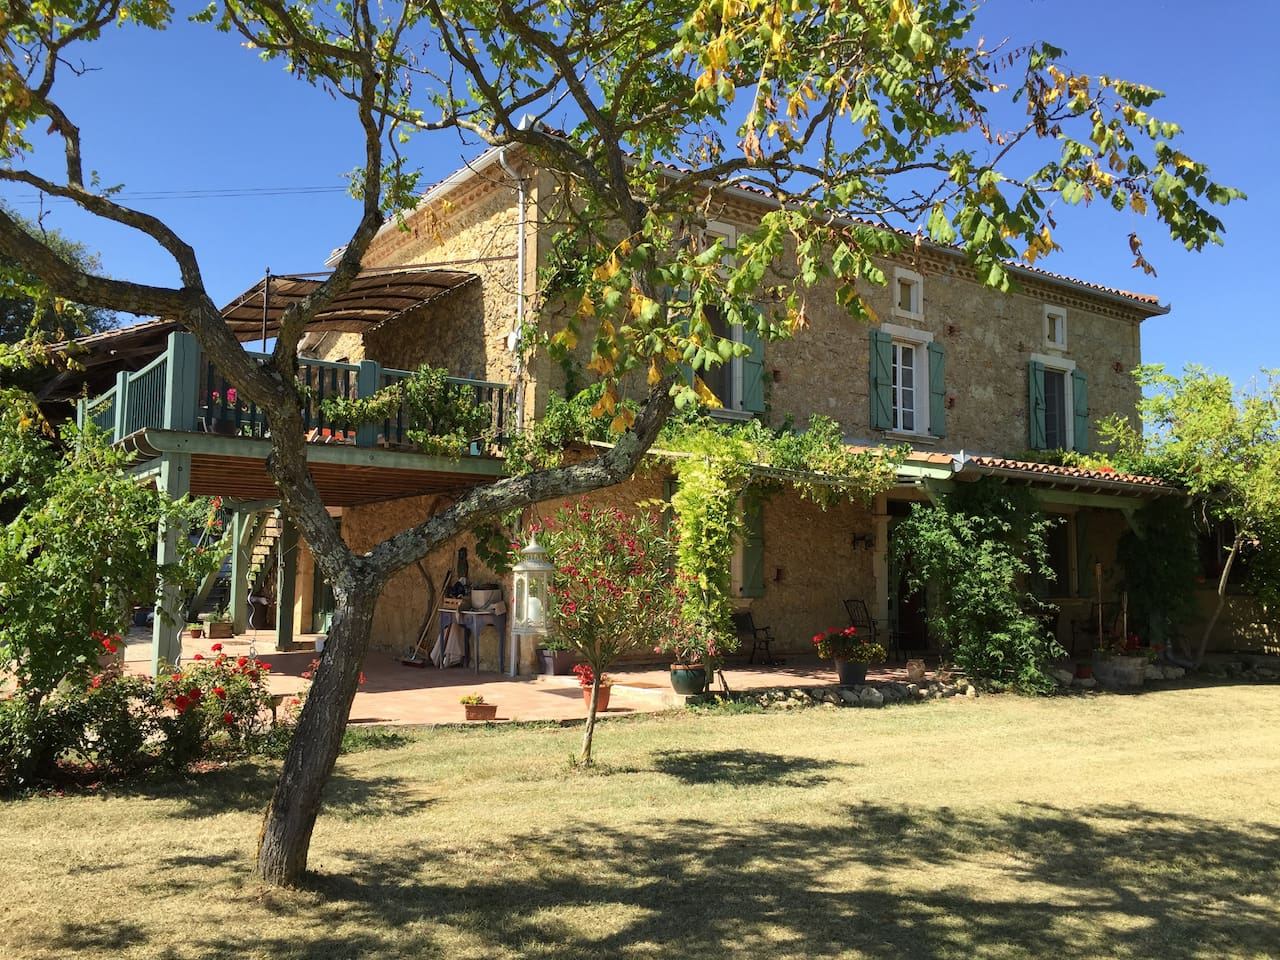 The main house with the balcony of Gite Les Pyrénées  which has been skillfully converted from the former hayloft.